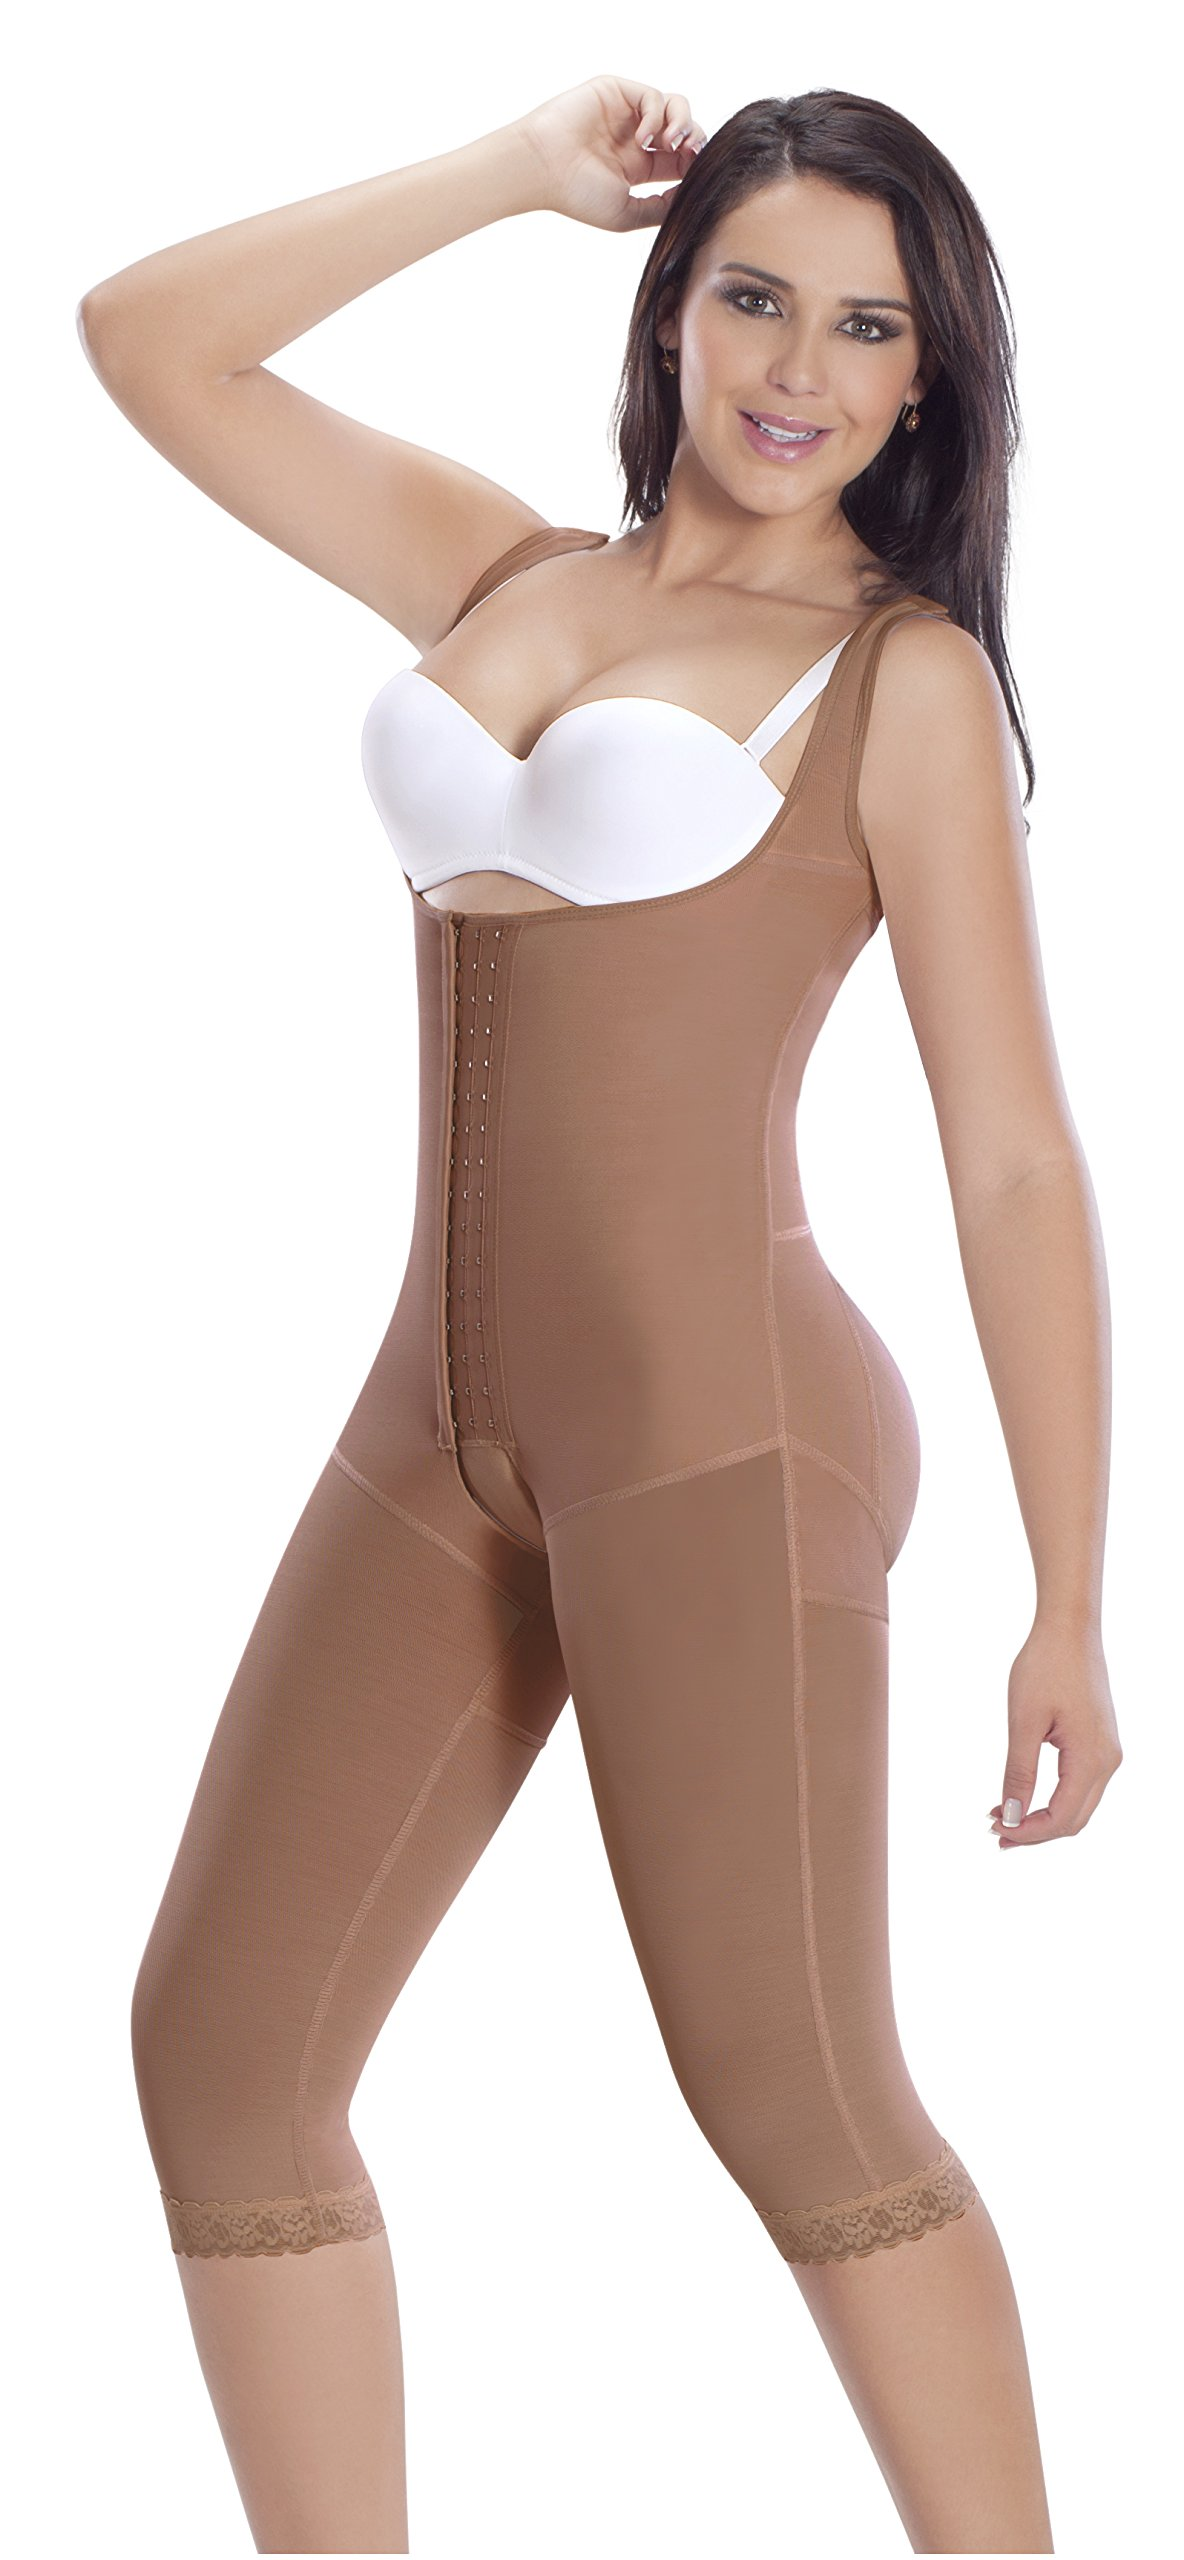 4 Hooks Long Leg Colombian Braless Shapewear Post Surgery Compression Garment Girdle 5057 (MOCCA, XS)